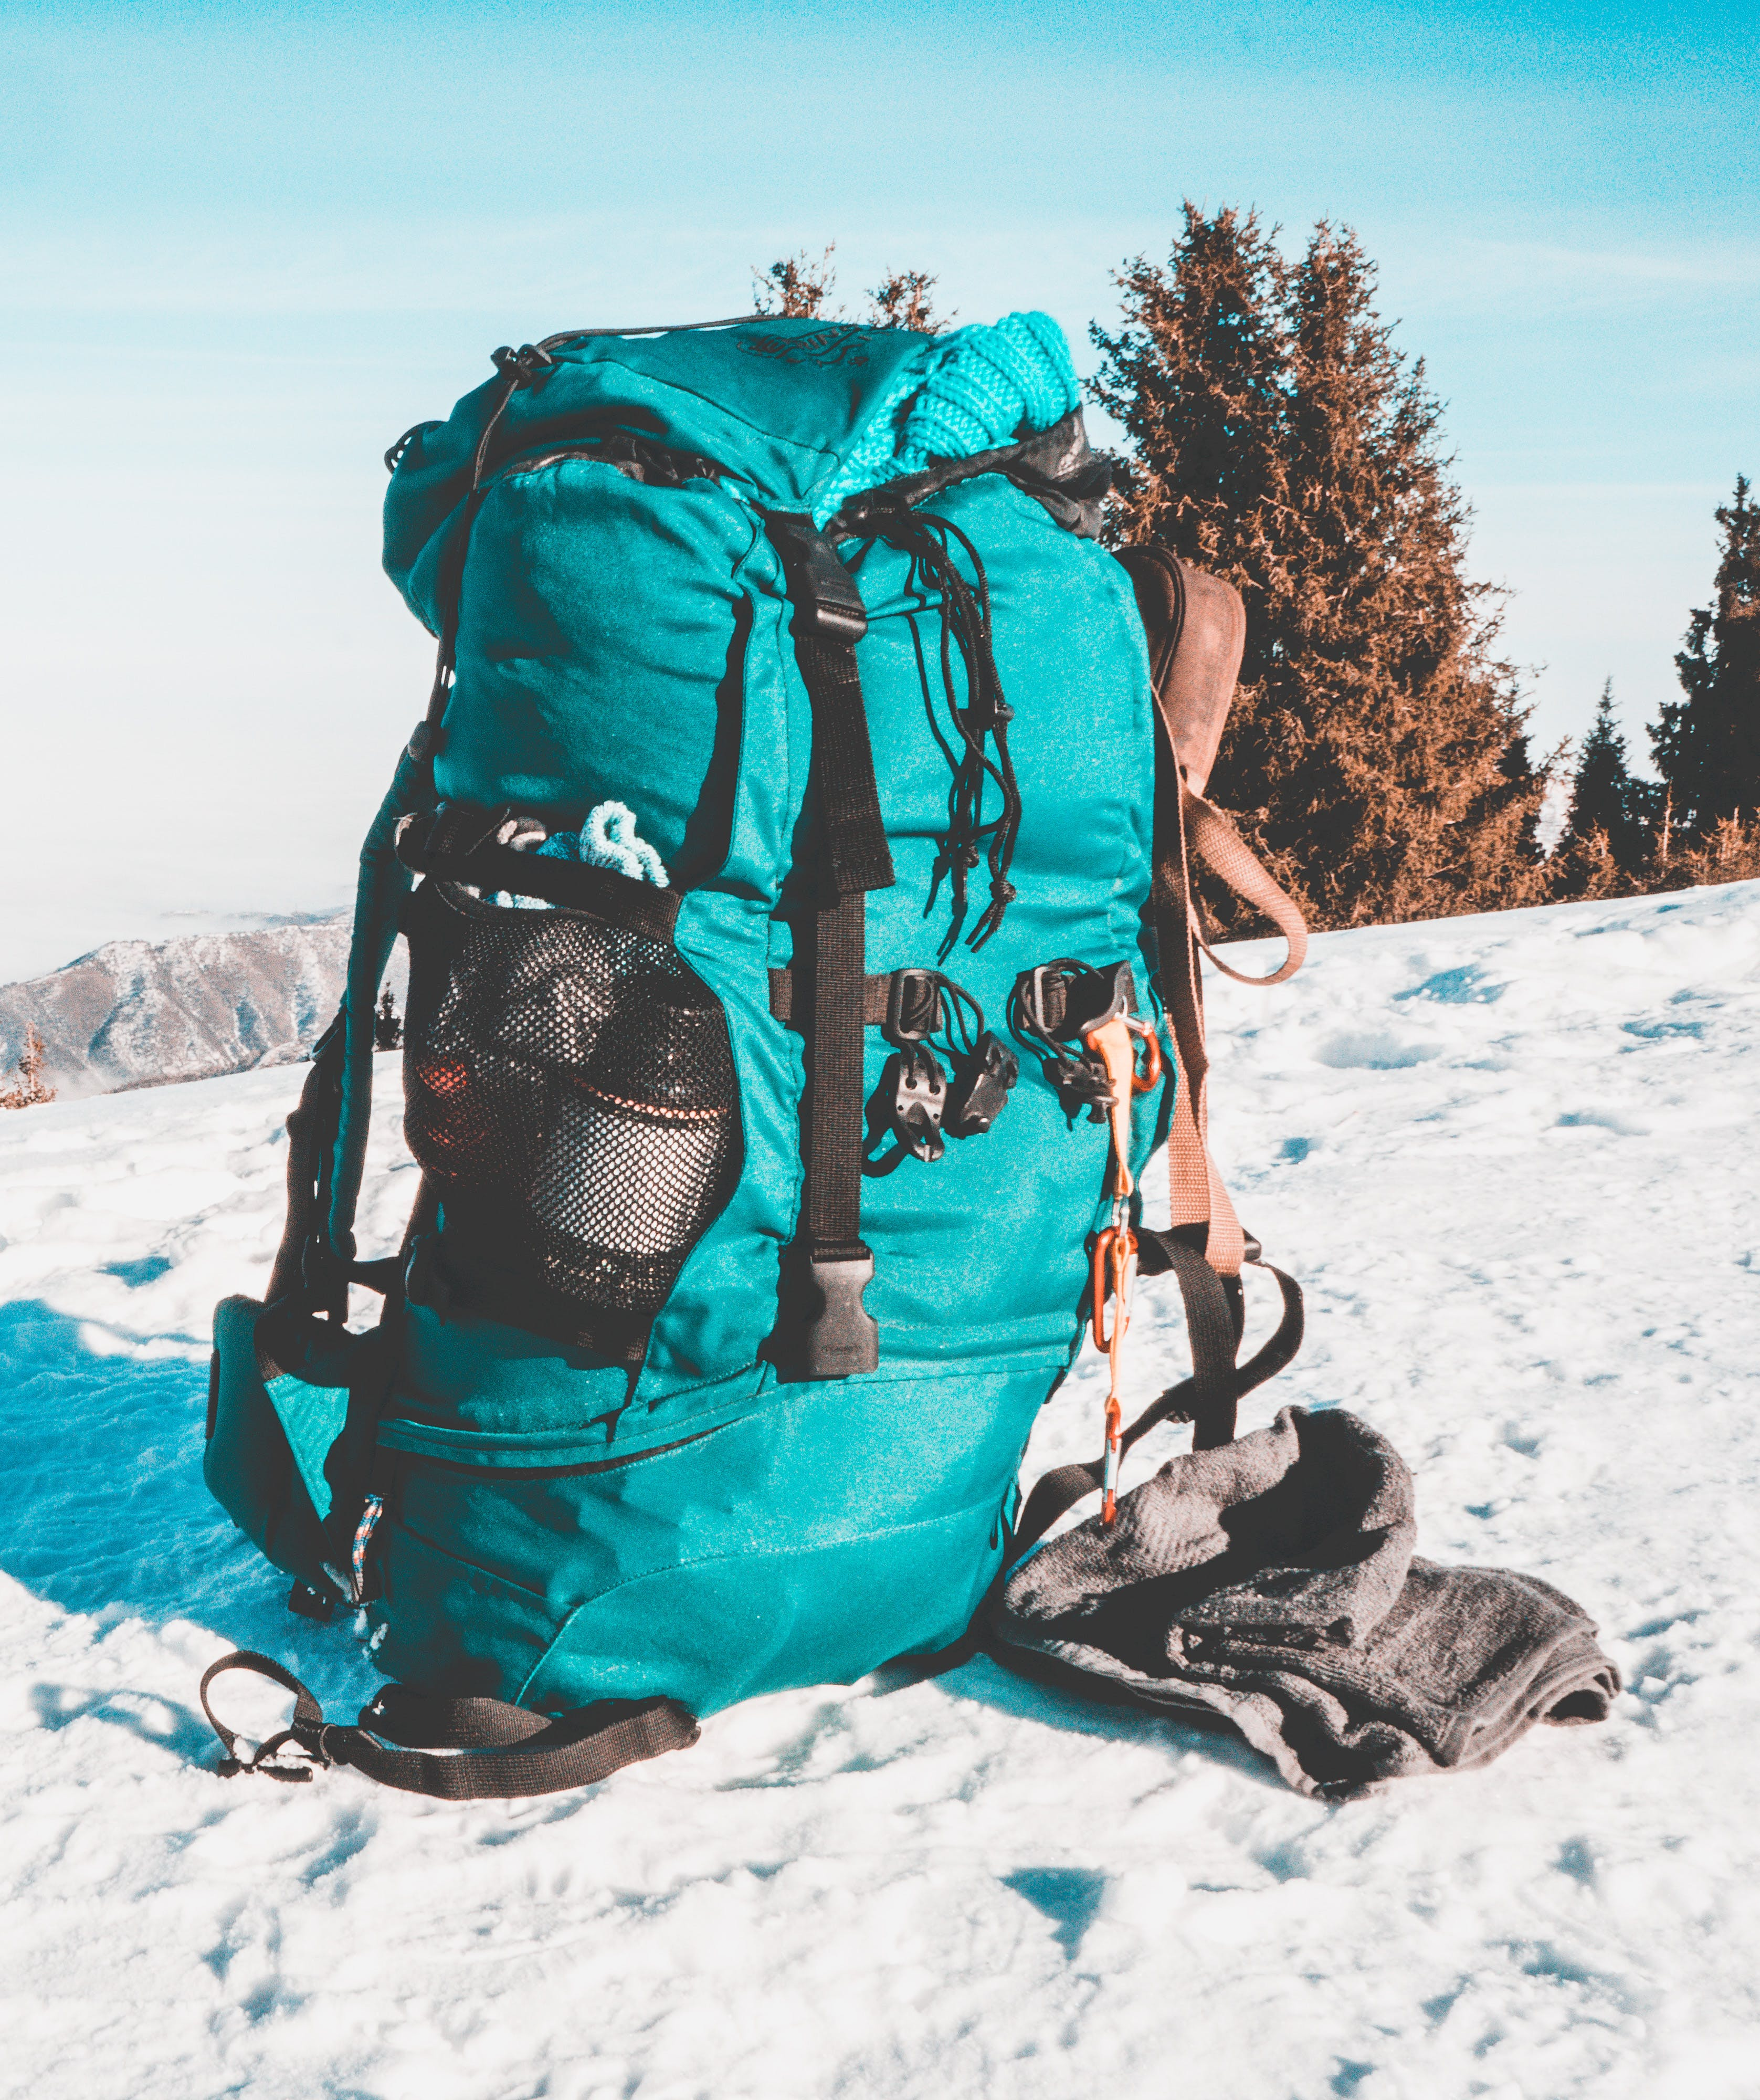 Free stock photo of bag, morning, snow, tent